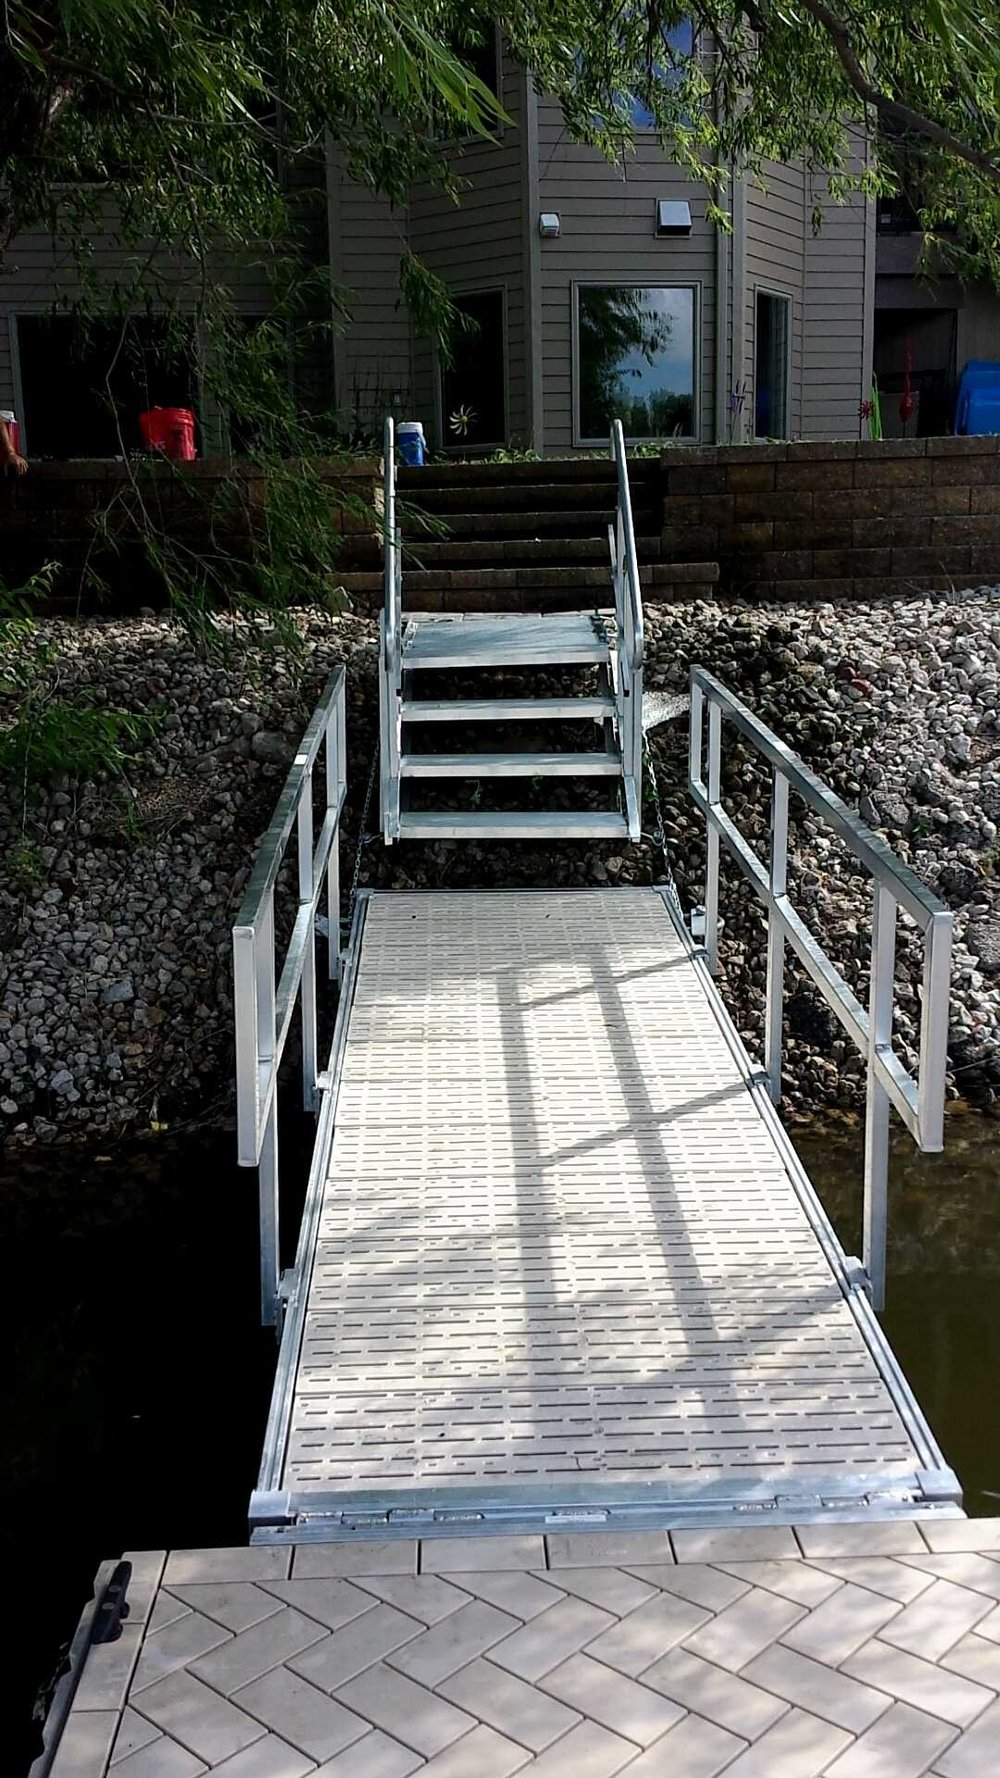 Anywhere stairs installed by Hotwood's to get down this slope to the walk way and the dock safely.